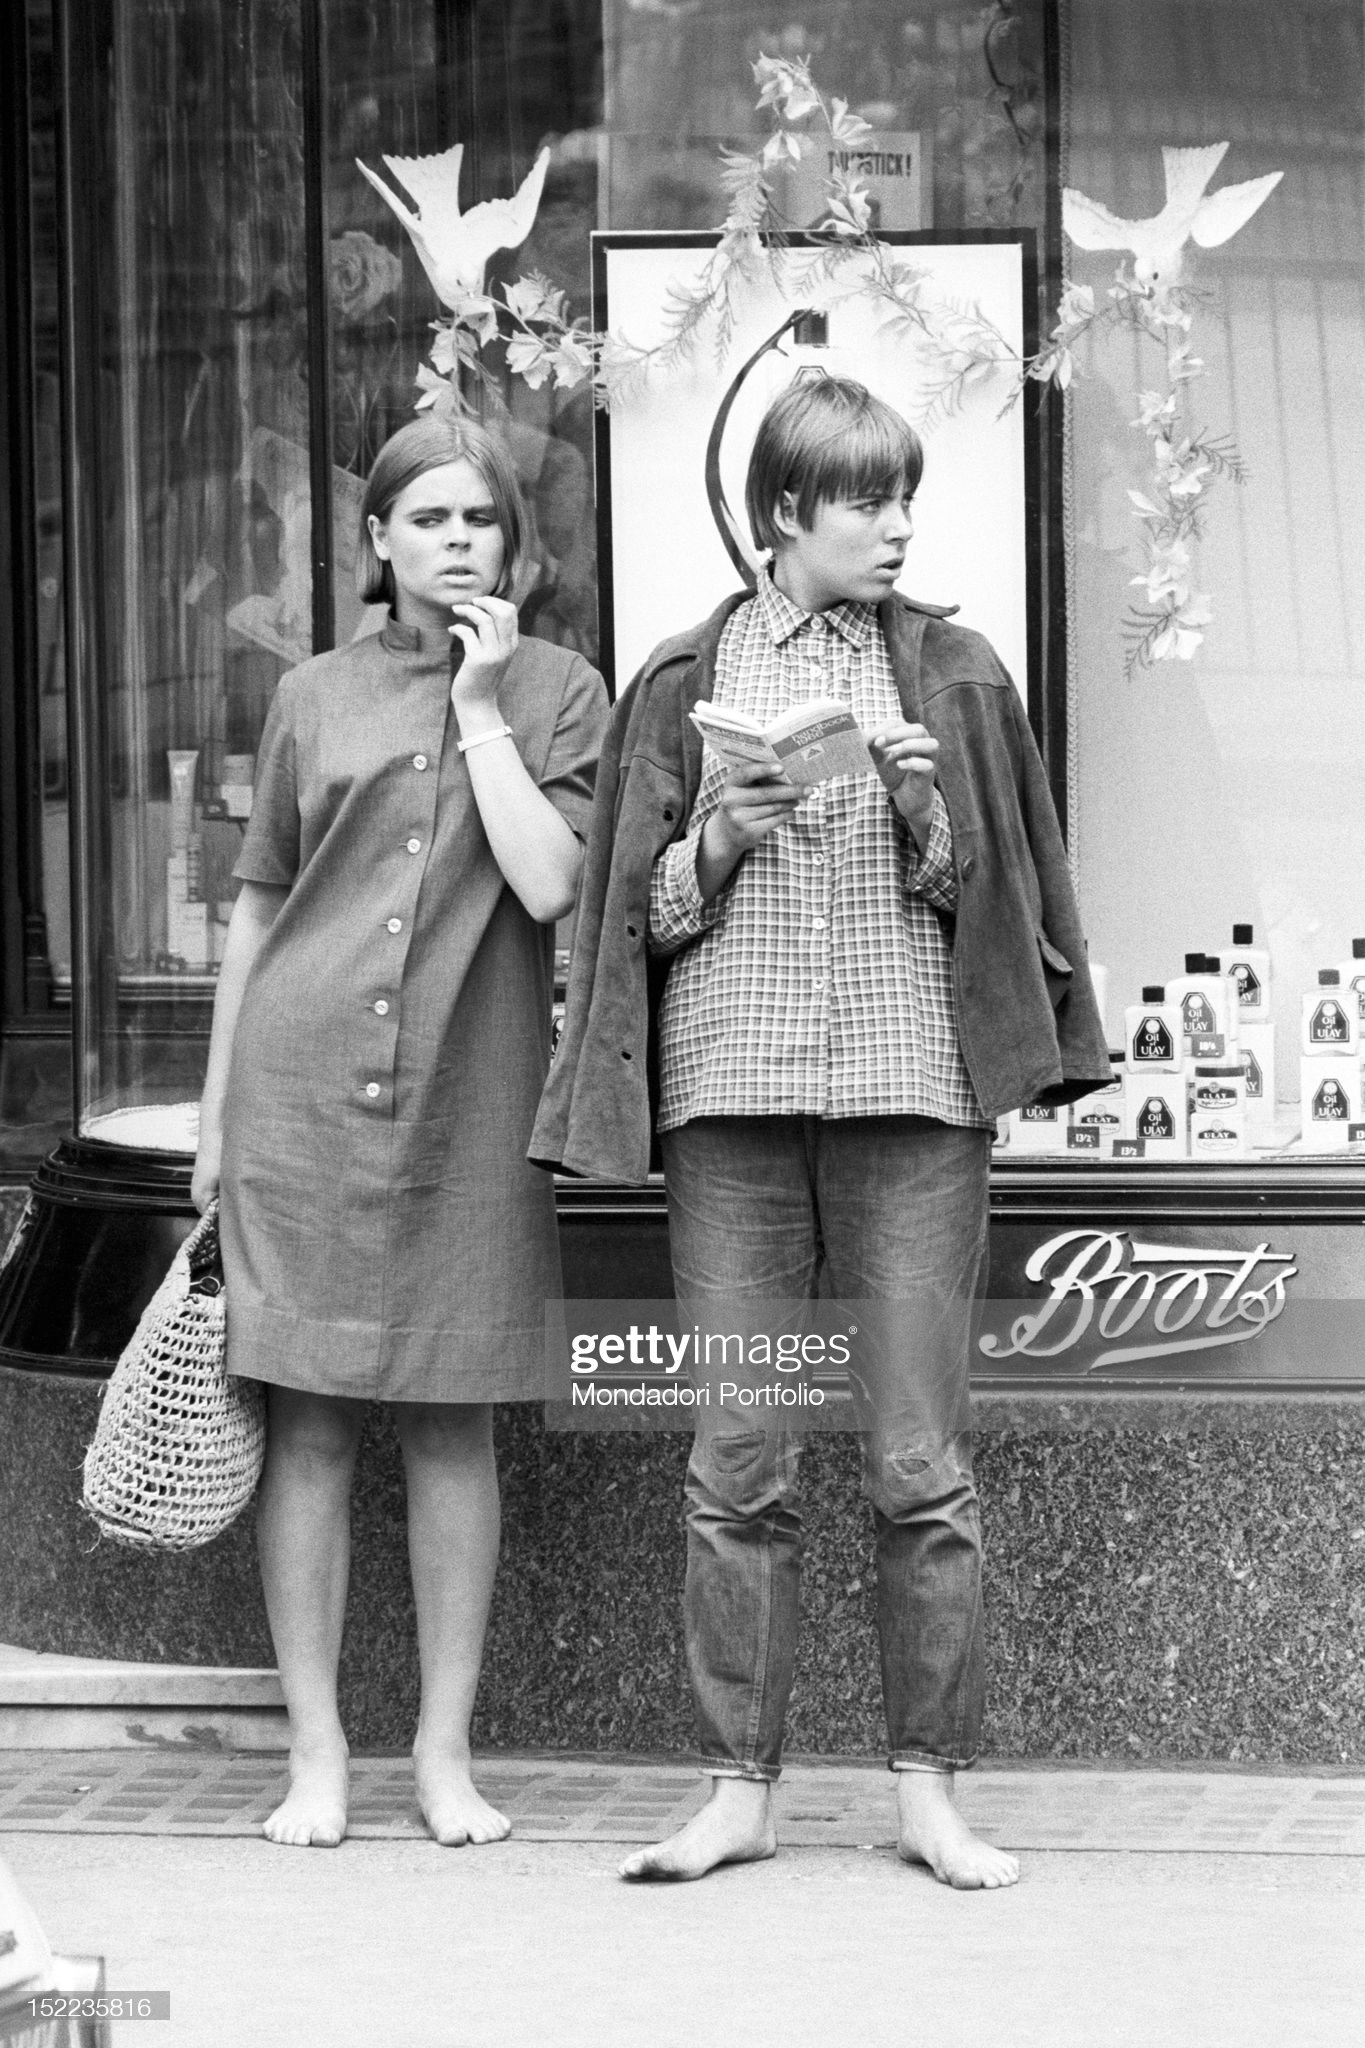 https://media.gettyimages.com/photos/two-british-girls-waiting-barefoot-in-front-of-a-shop-window-london-picture-id152235816?s=2048x2048